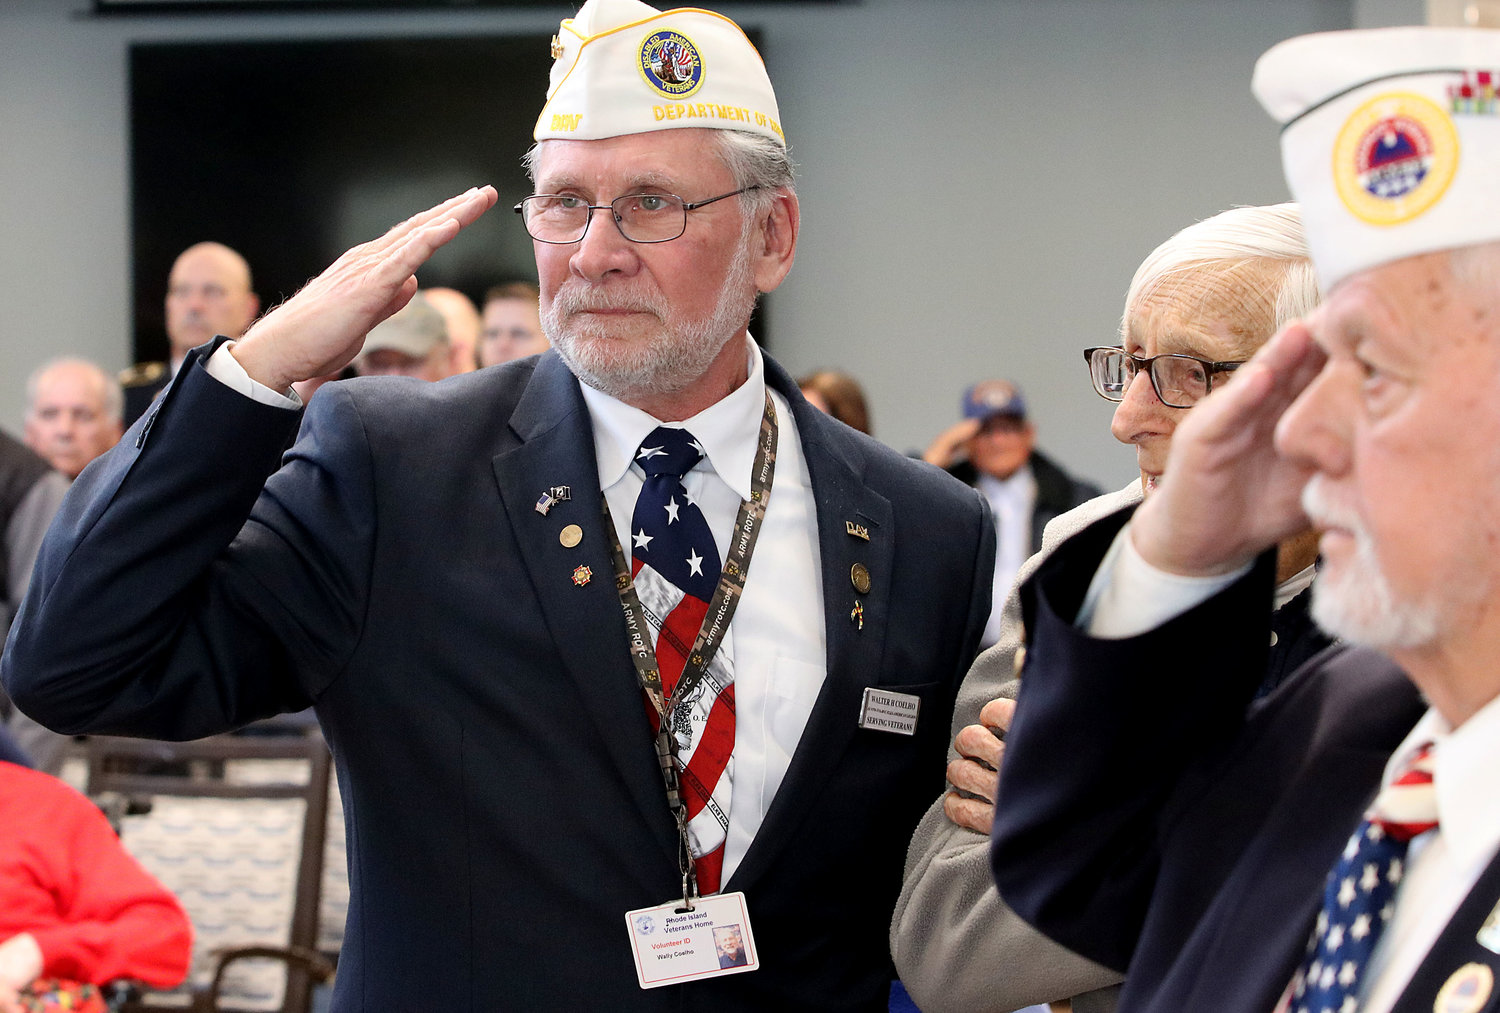 Bristol Veteran's Council President Walter Coelho (left) salutes the flag during the National Anthem.